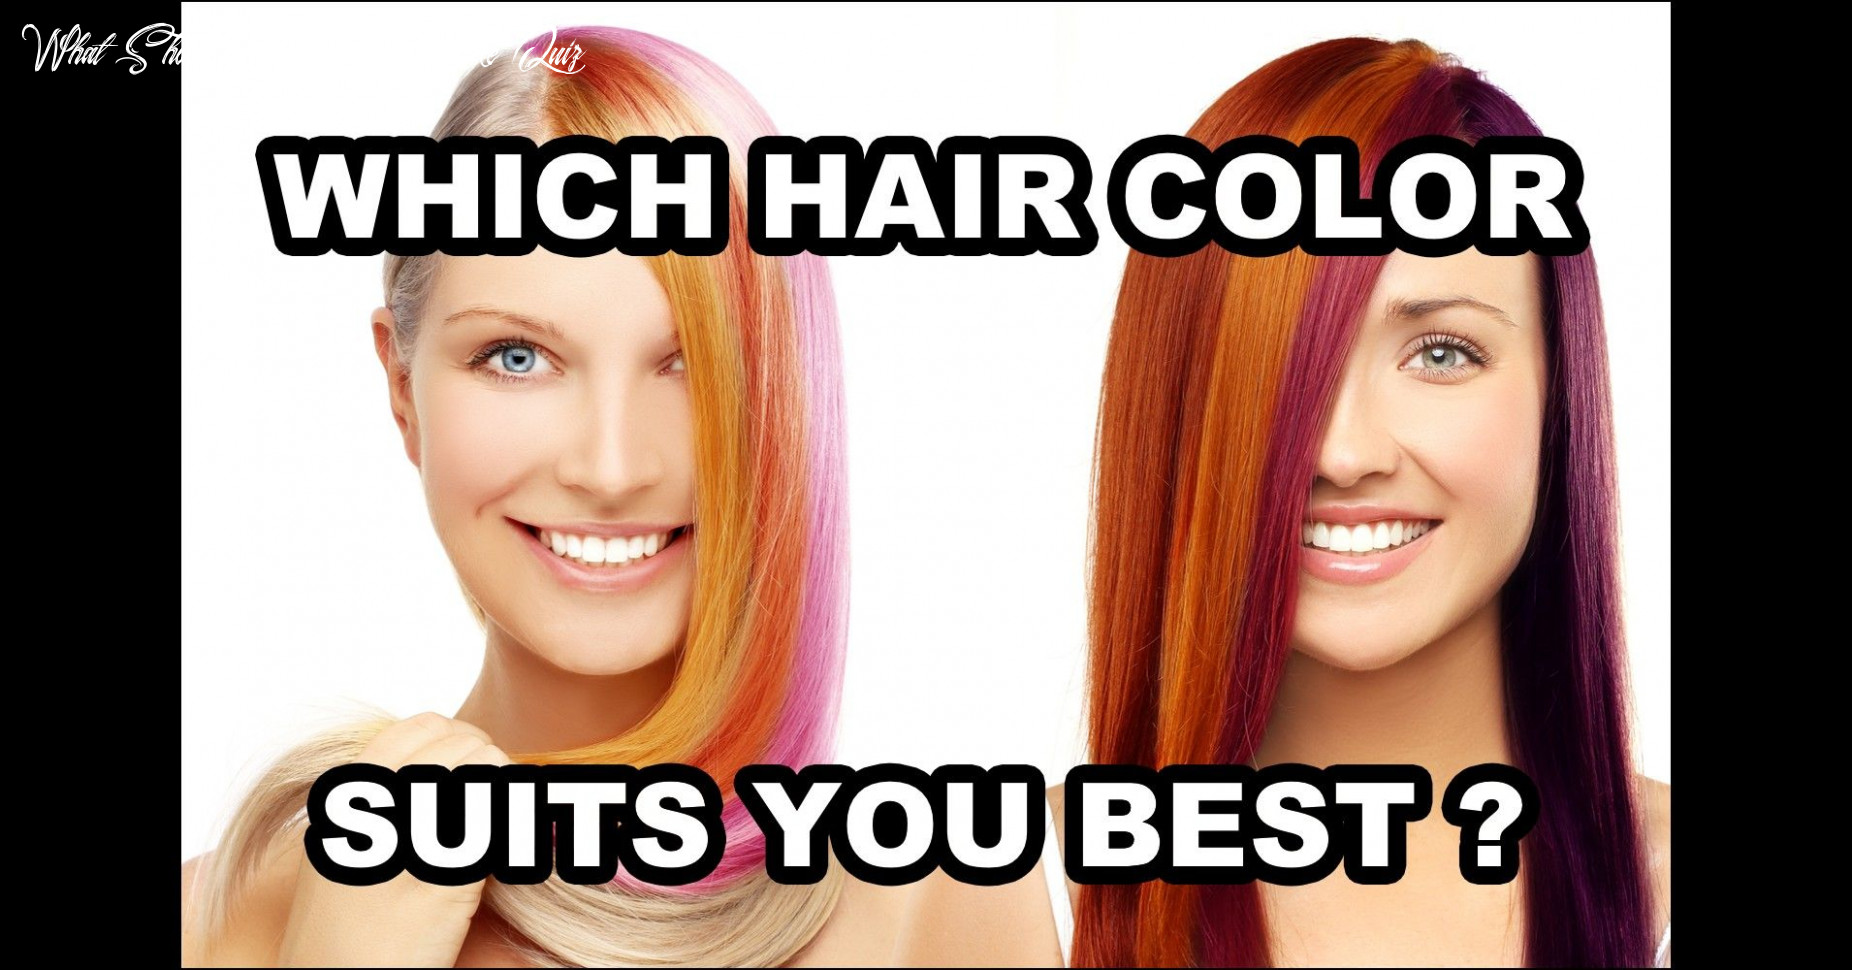 The best hairstyle for me quiz | which hair colour, which hair